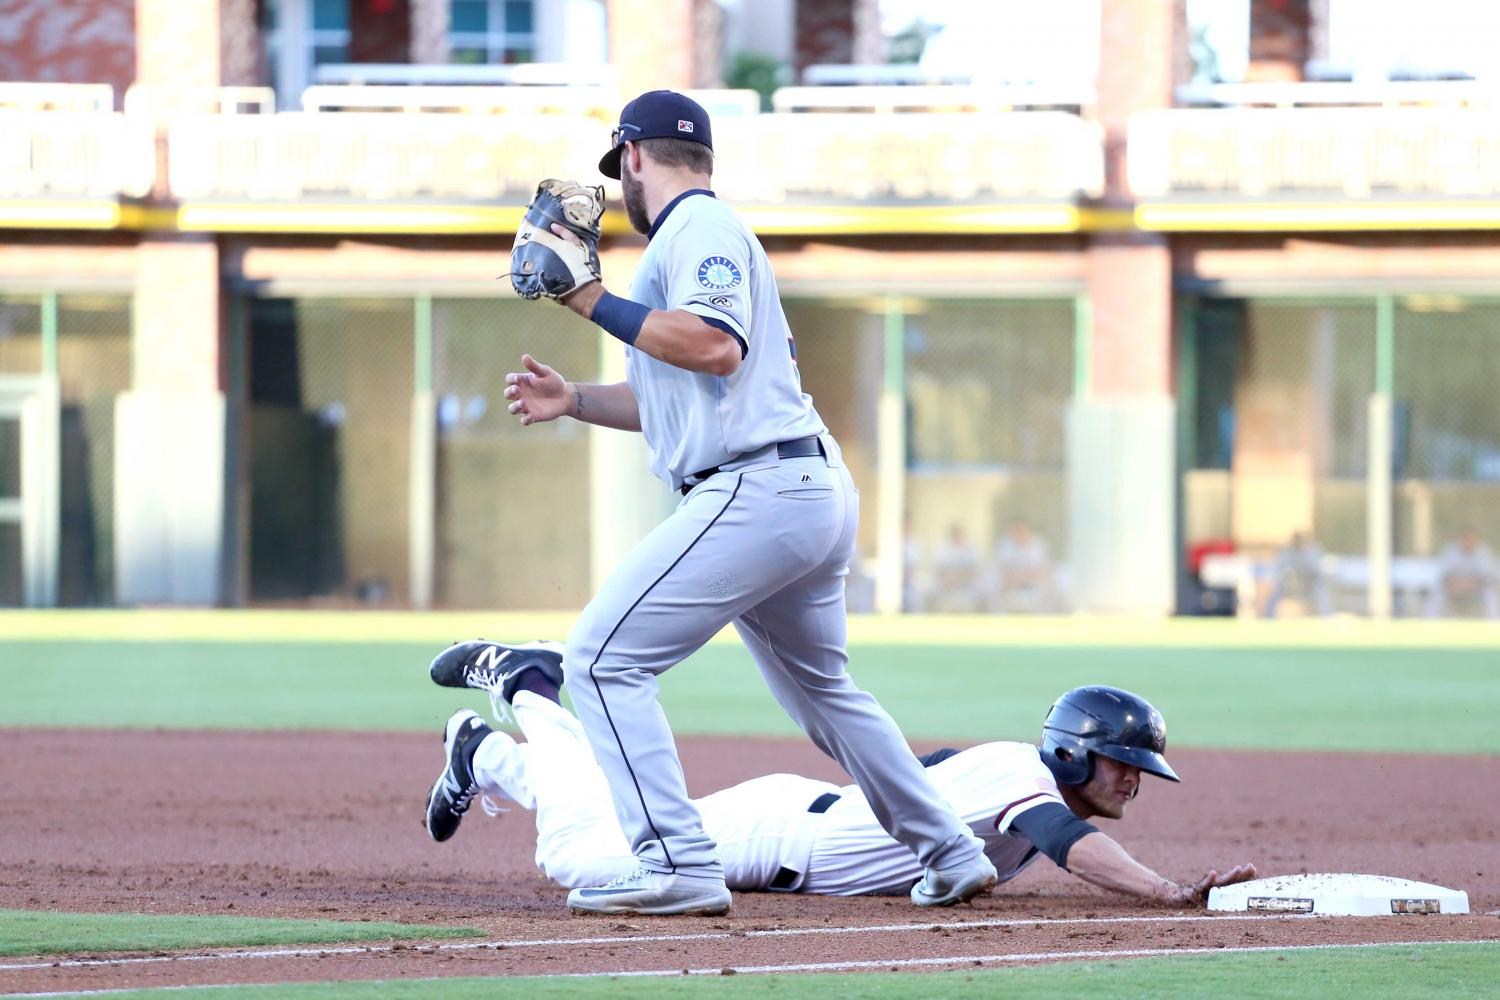 Chihuahuas take down Tacoma in game one